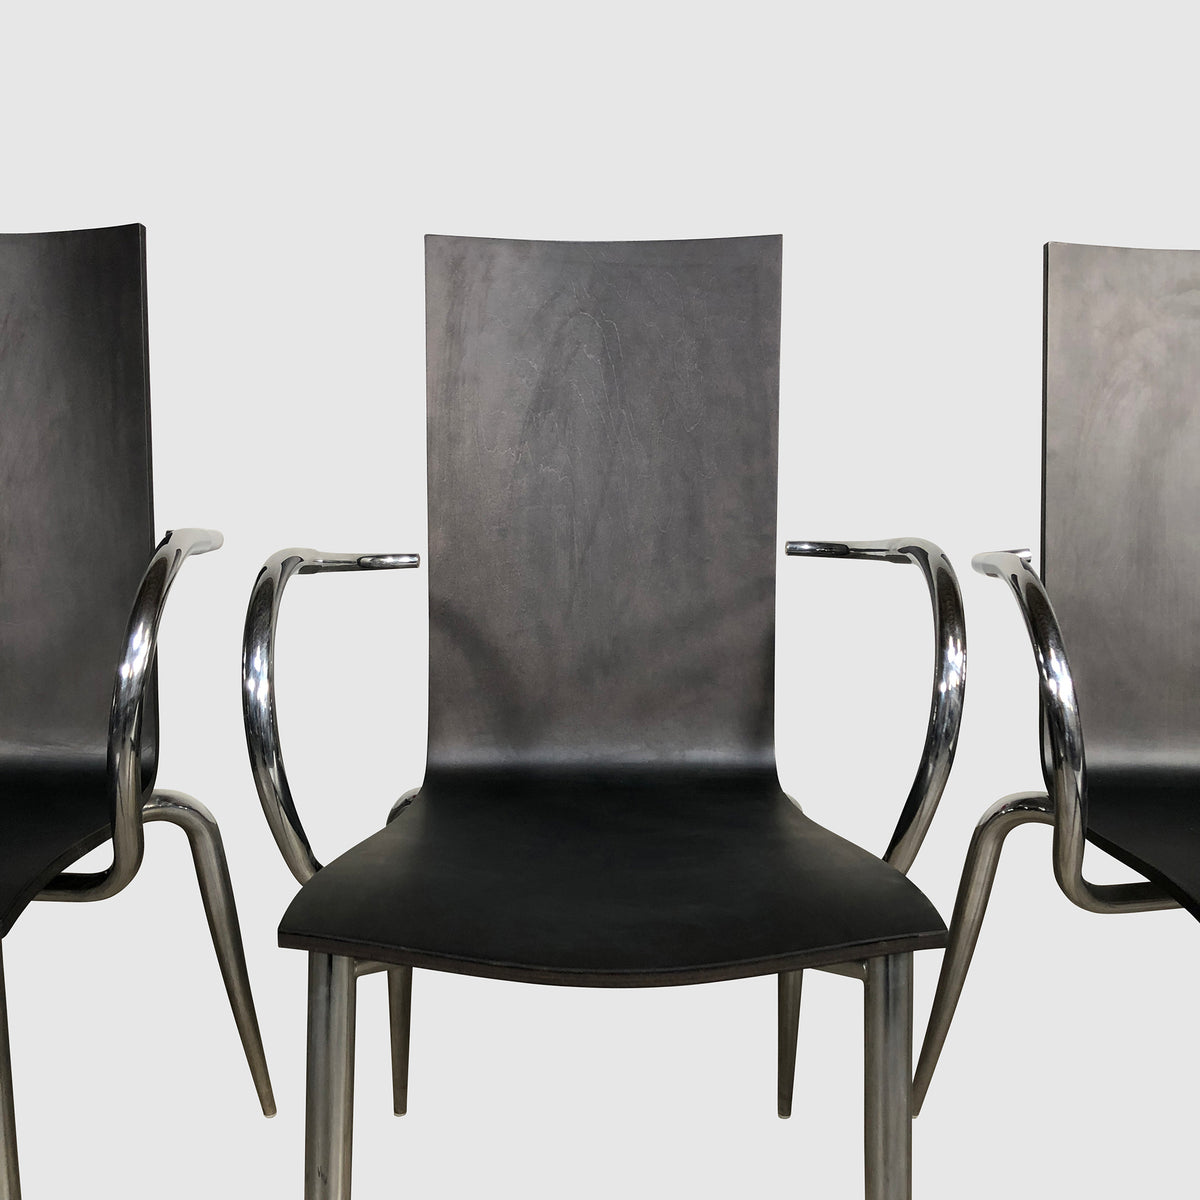 Black Wood & Chrome Dining Chair (4 in stock) - $299 each